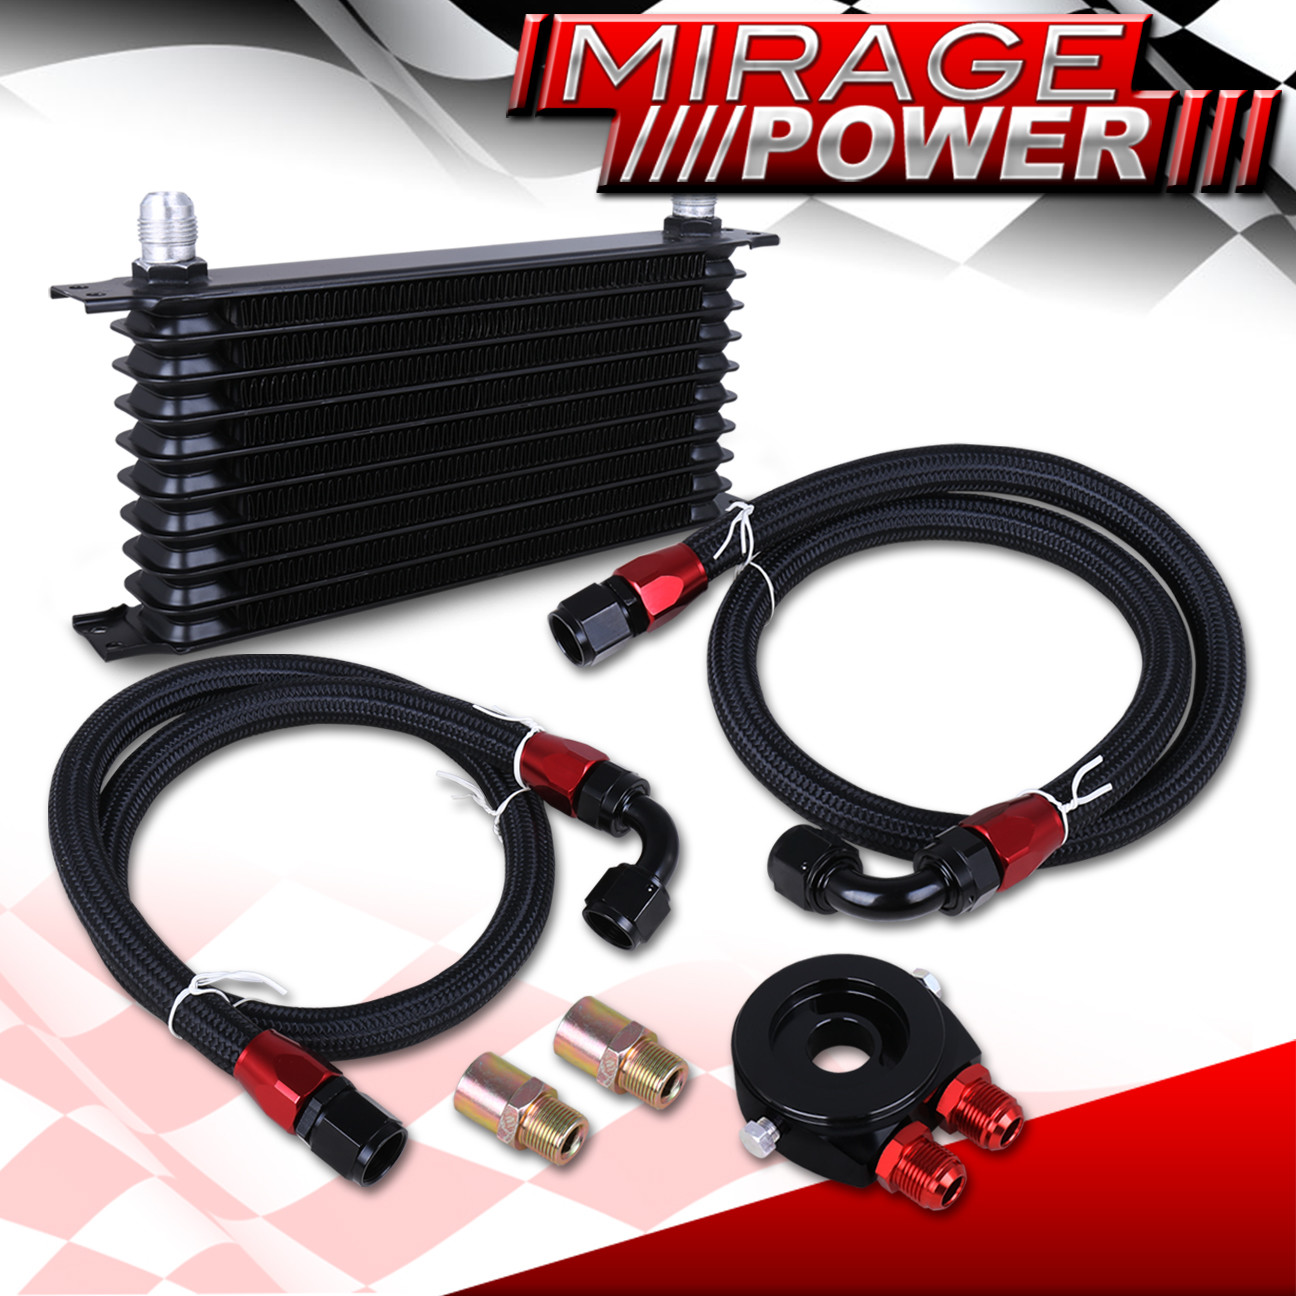 Engine Oil Cooler Works : An row engine diff trans oil cooler cooling adapter